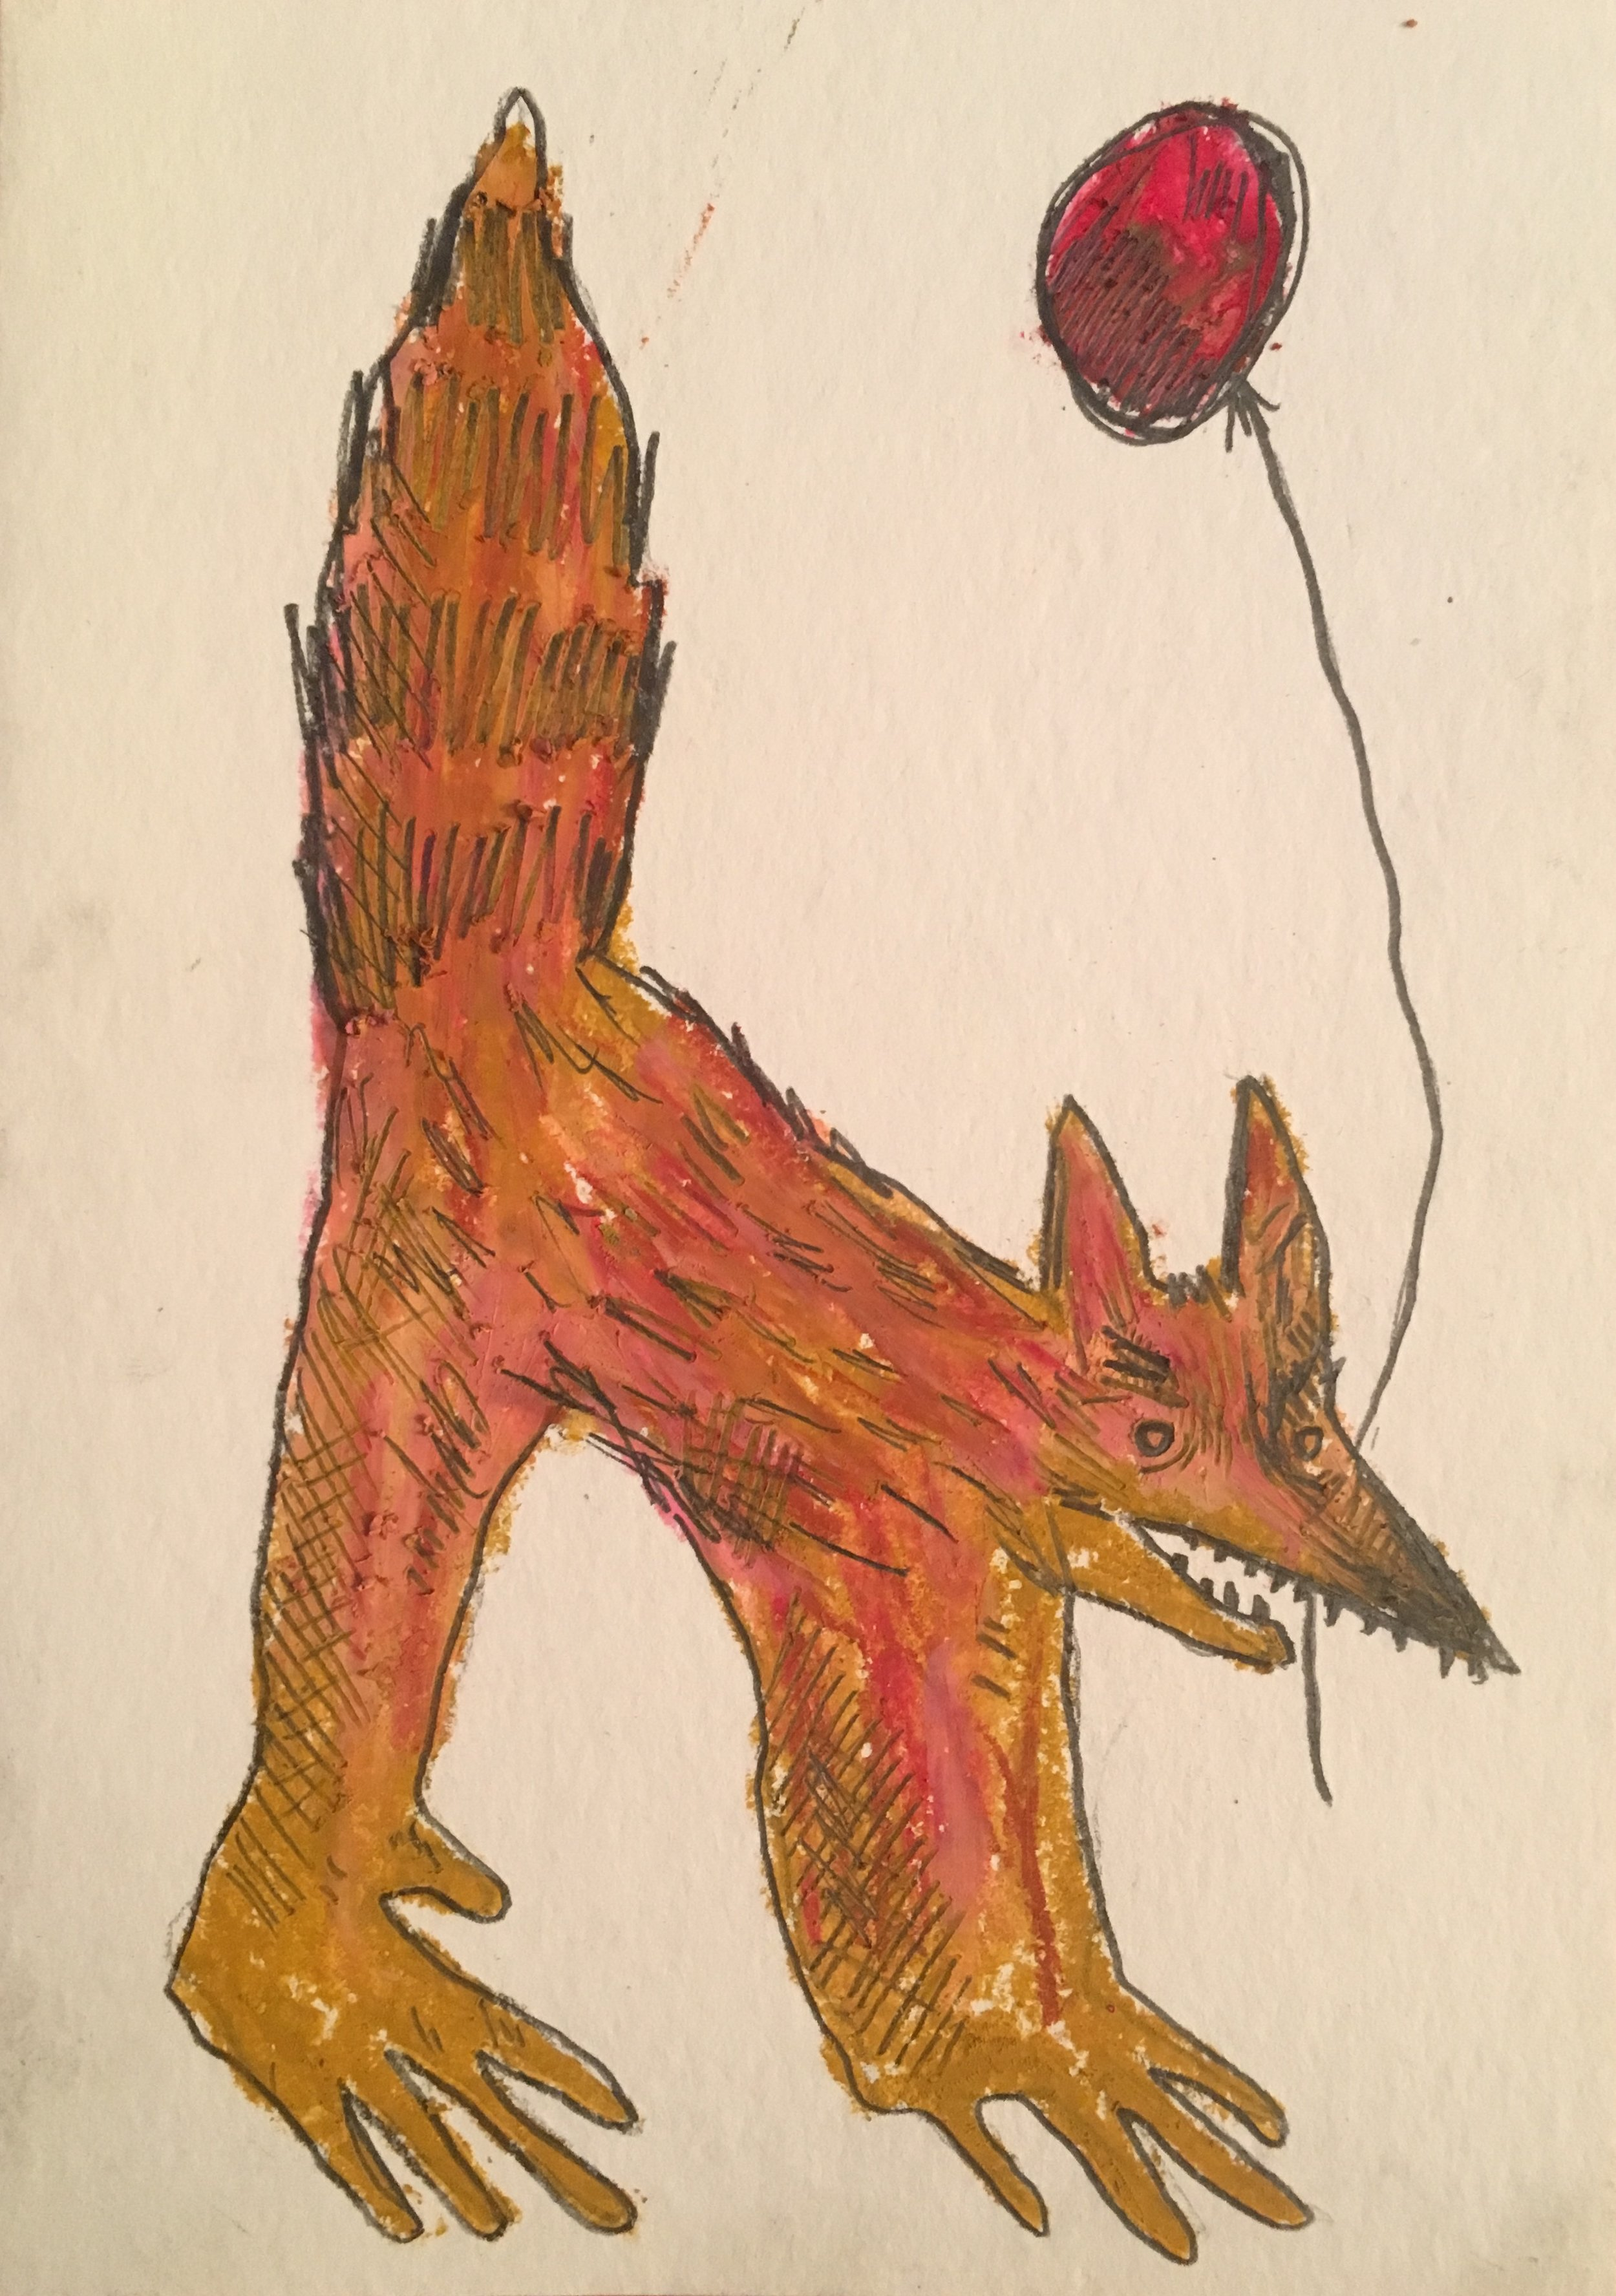 Angry Dog With Balloon (2018)  Oil Pastel and Pencil  5x9in